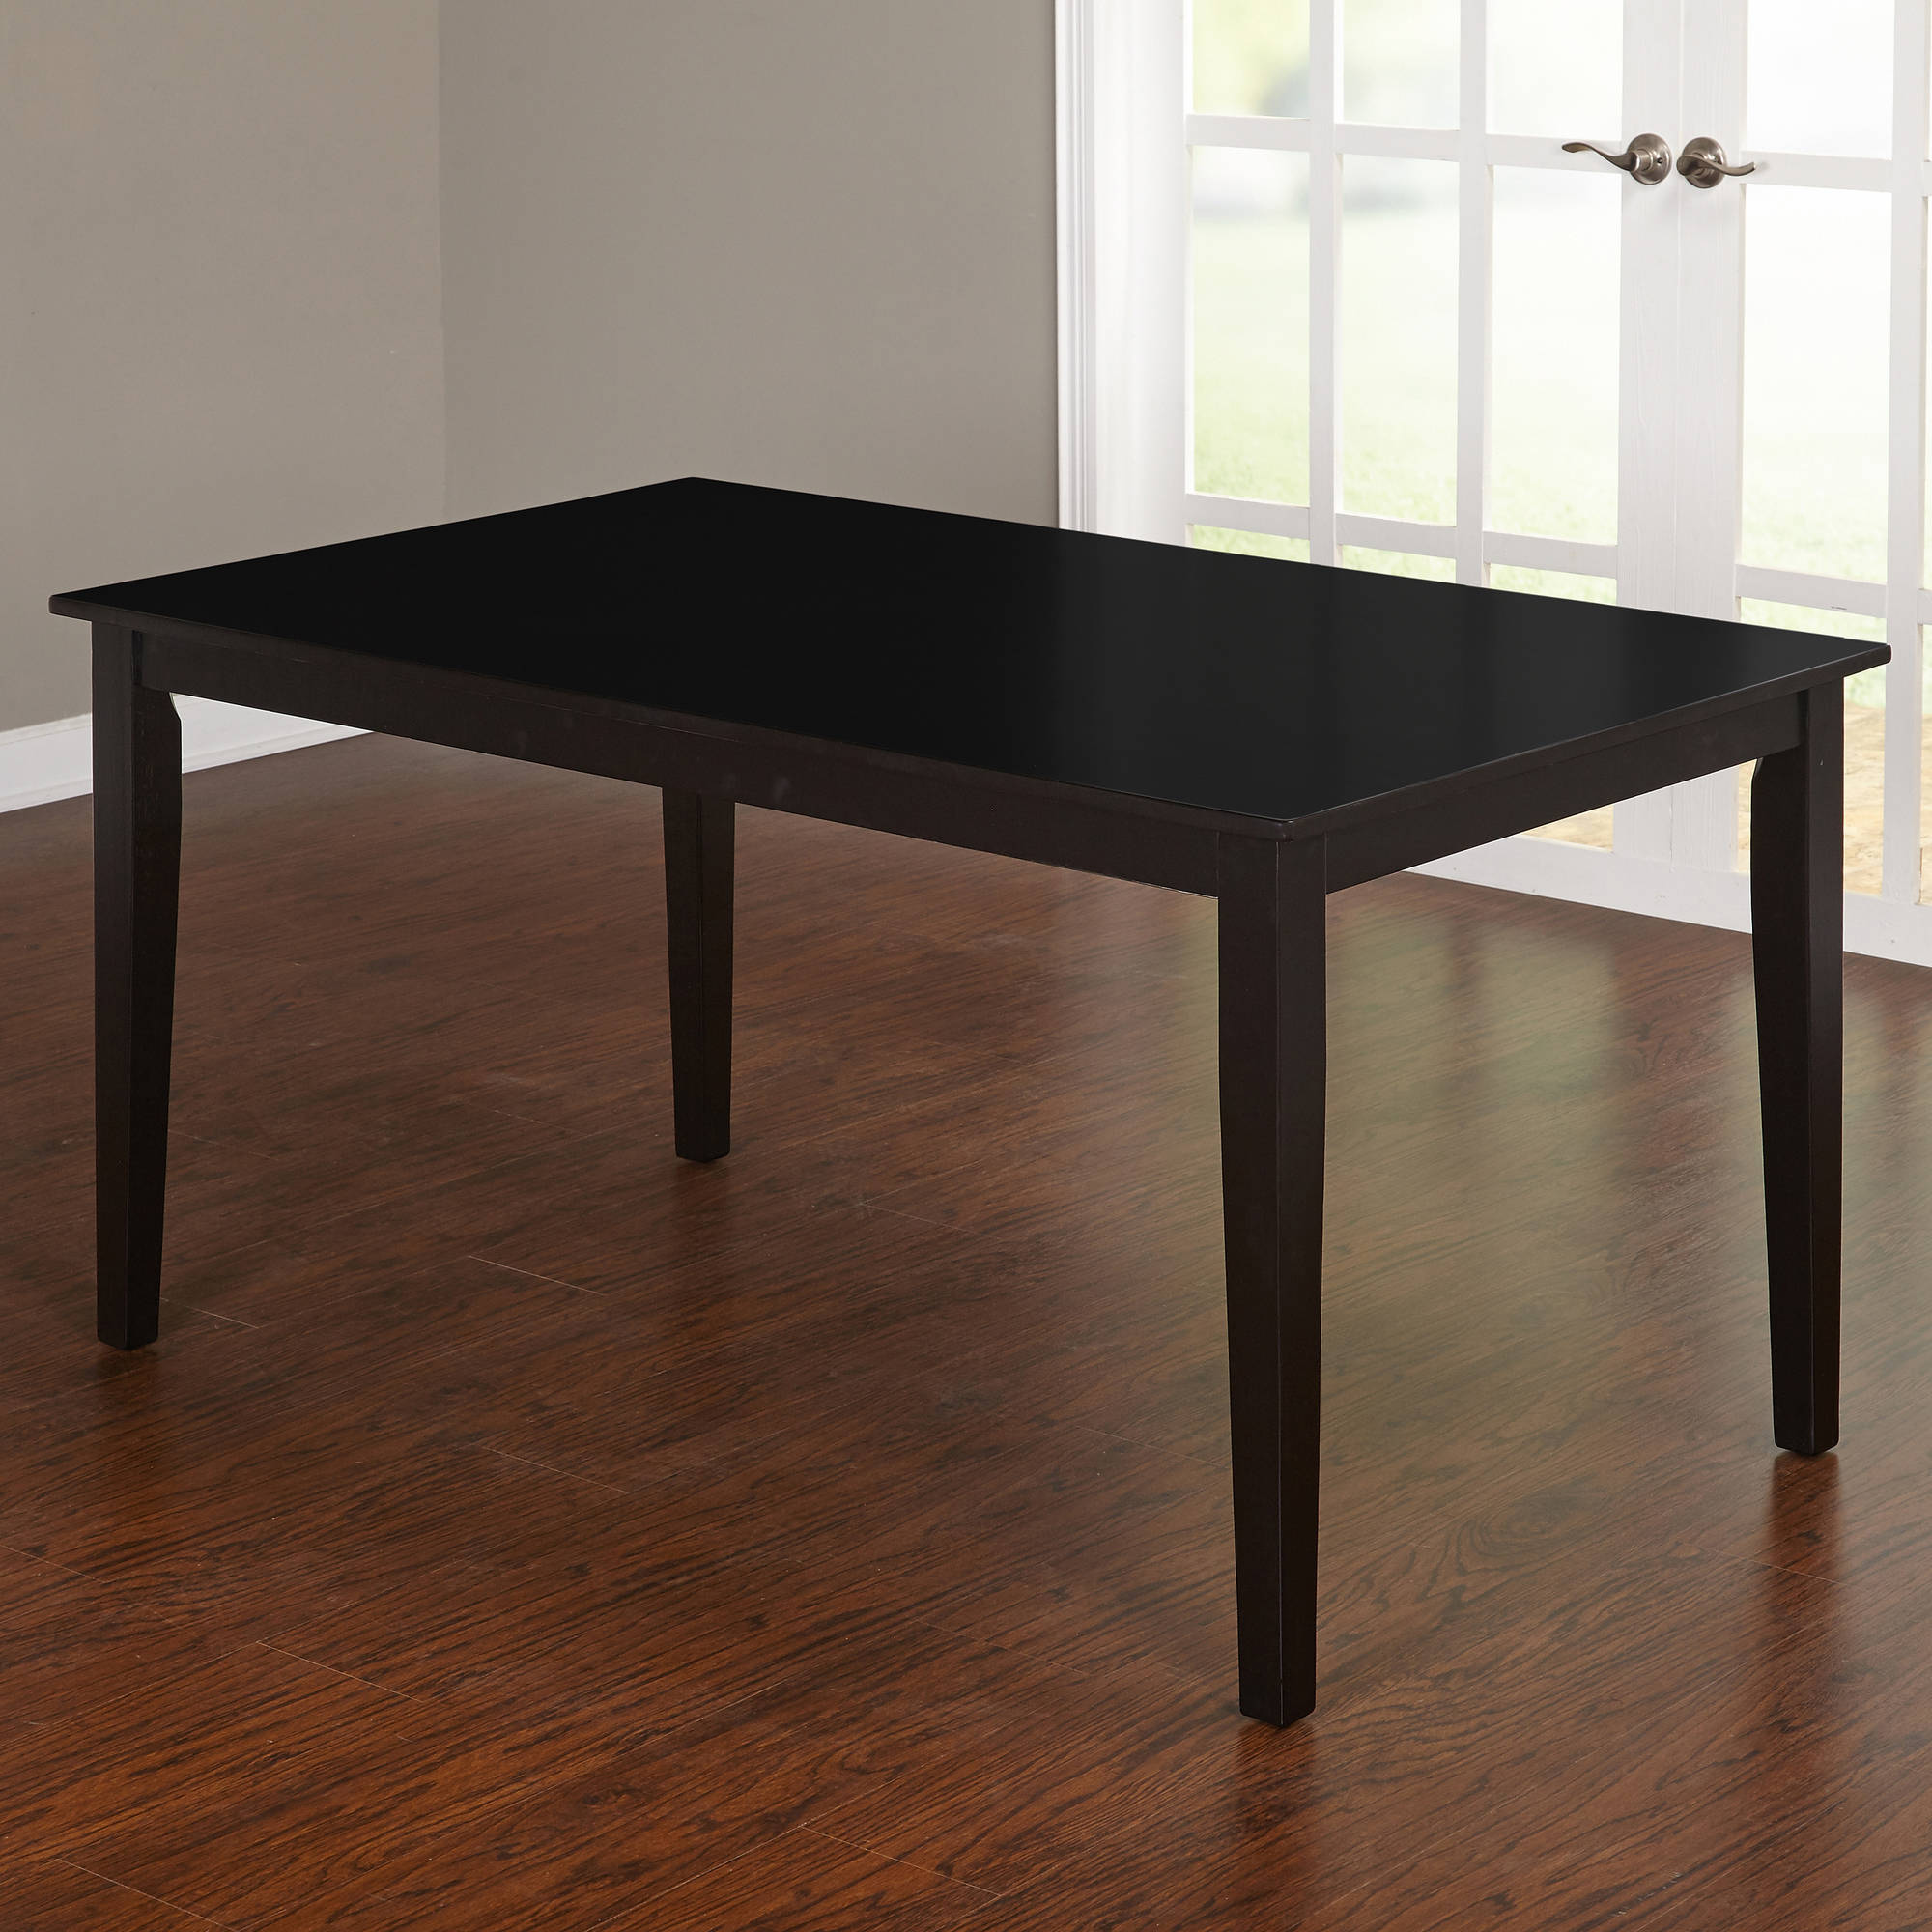 Contemporary Large Dining Table, Black by